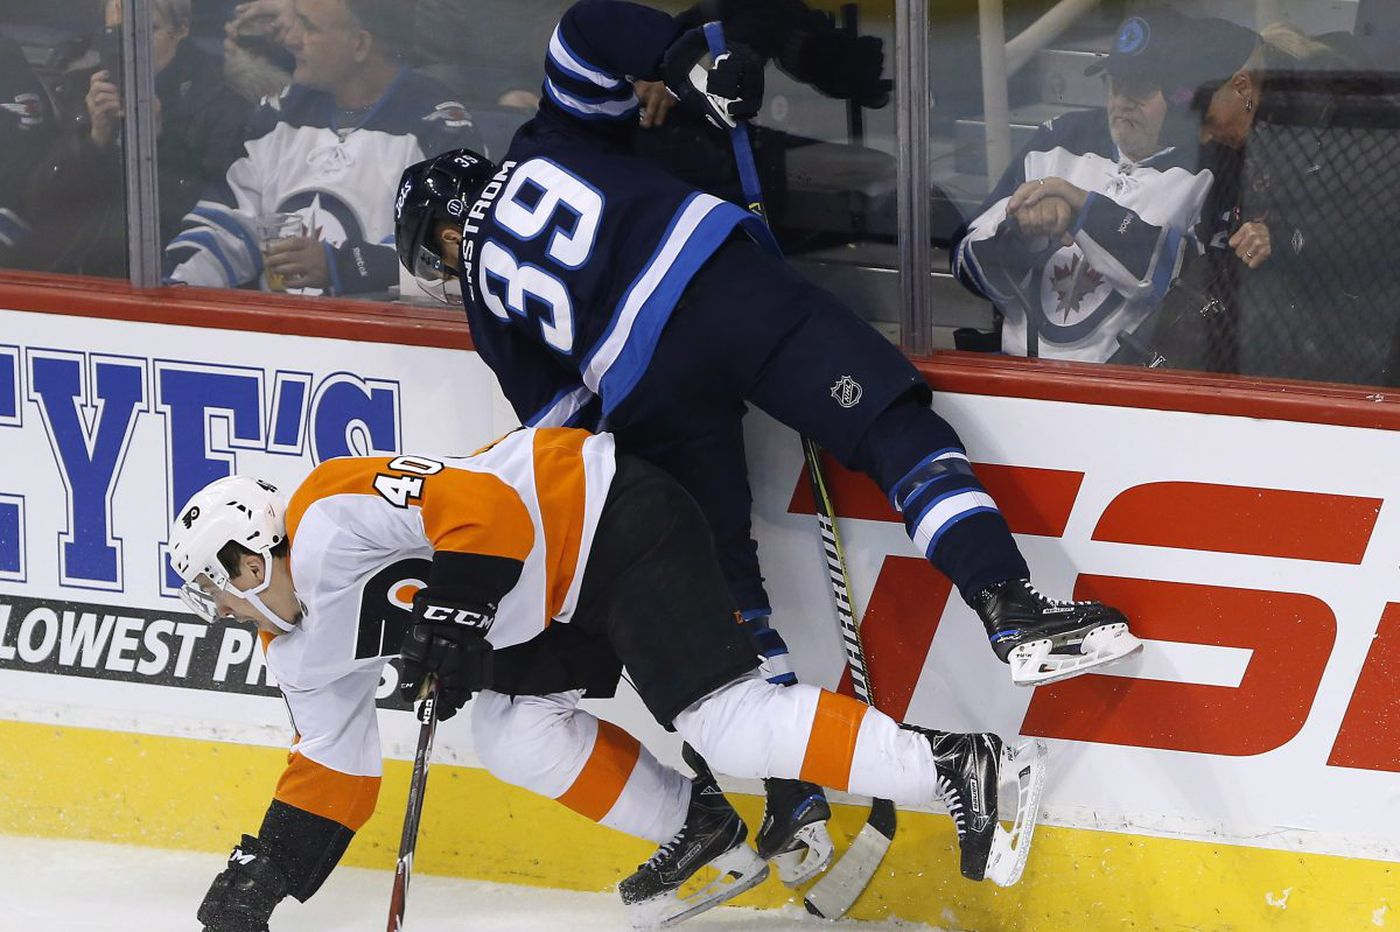 Flyers end scoring drought but lose to Jets in shootout